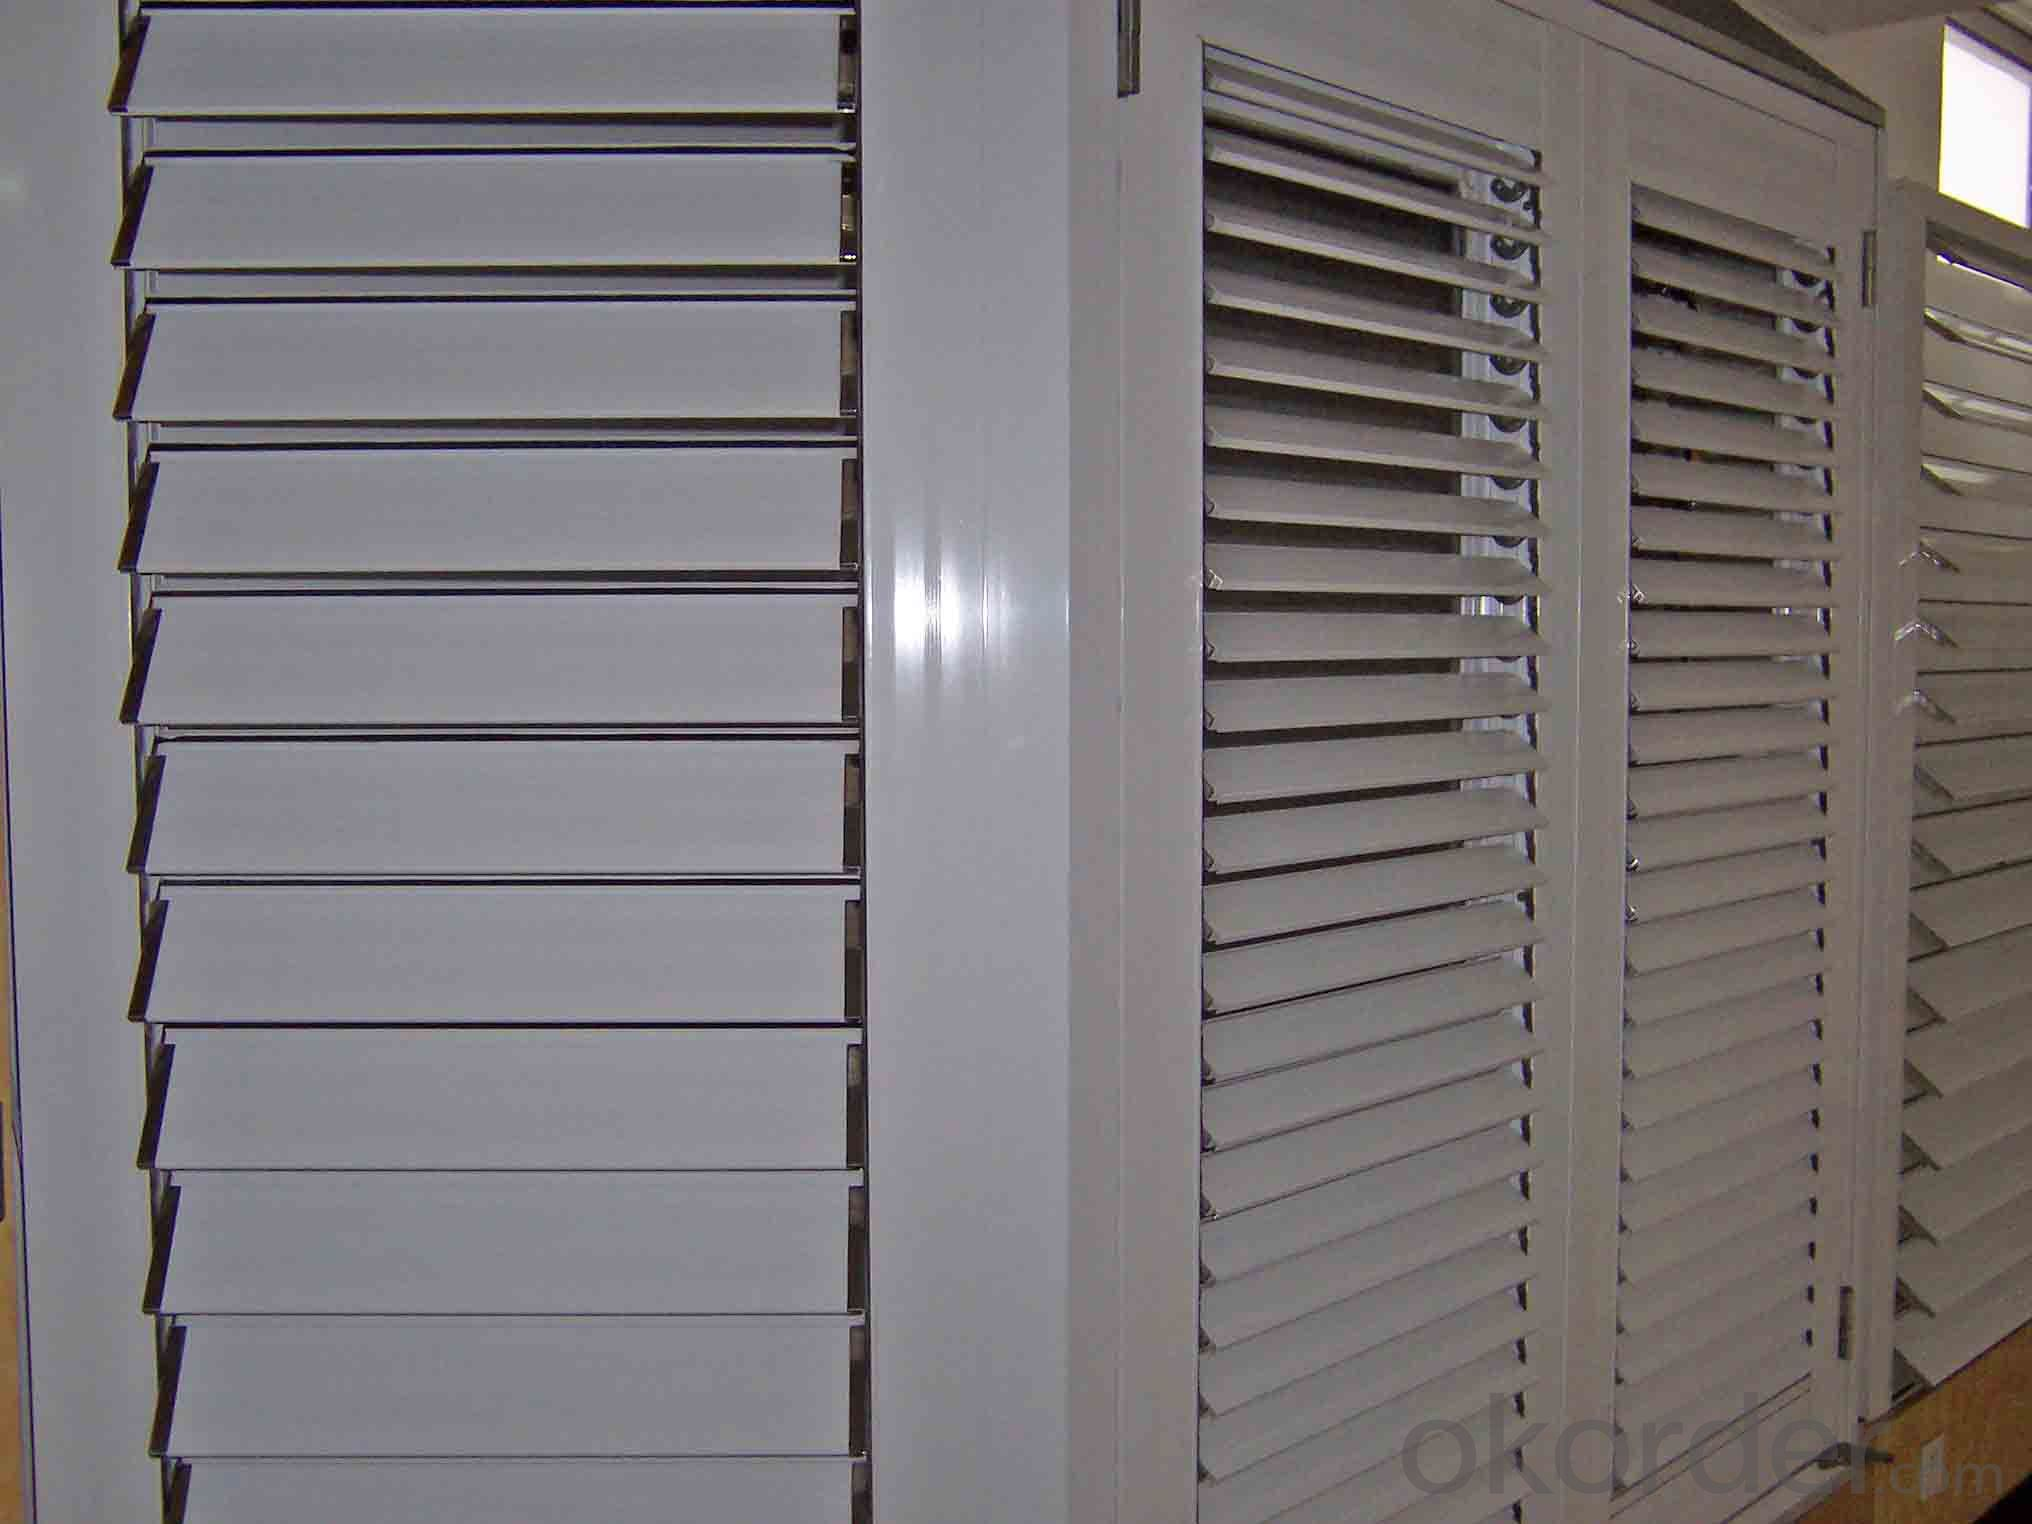 Adjustable aluminum louver window Adjustable aluminum louver window